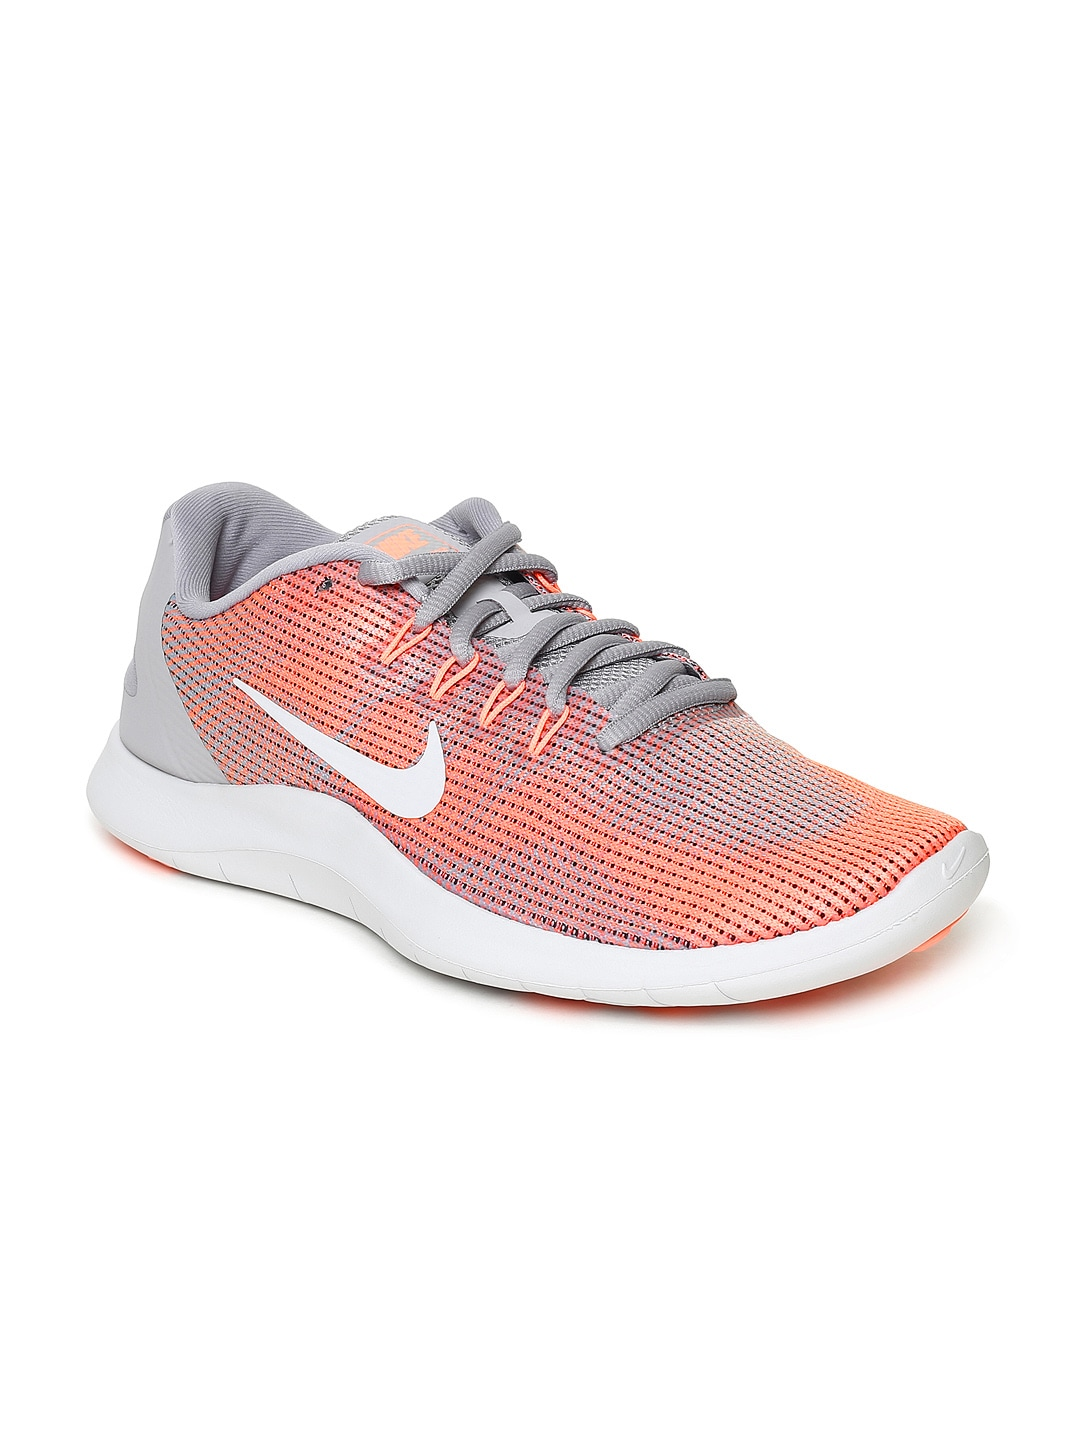 143a40af6e43 Nike Running Shoes - Buy Nike Running Shoes Online